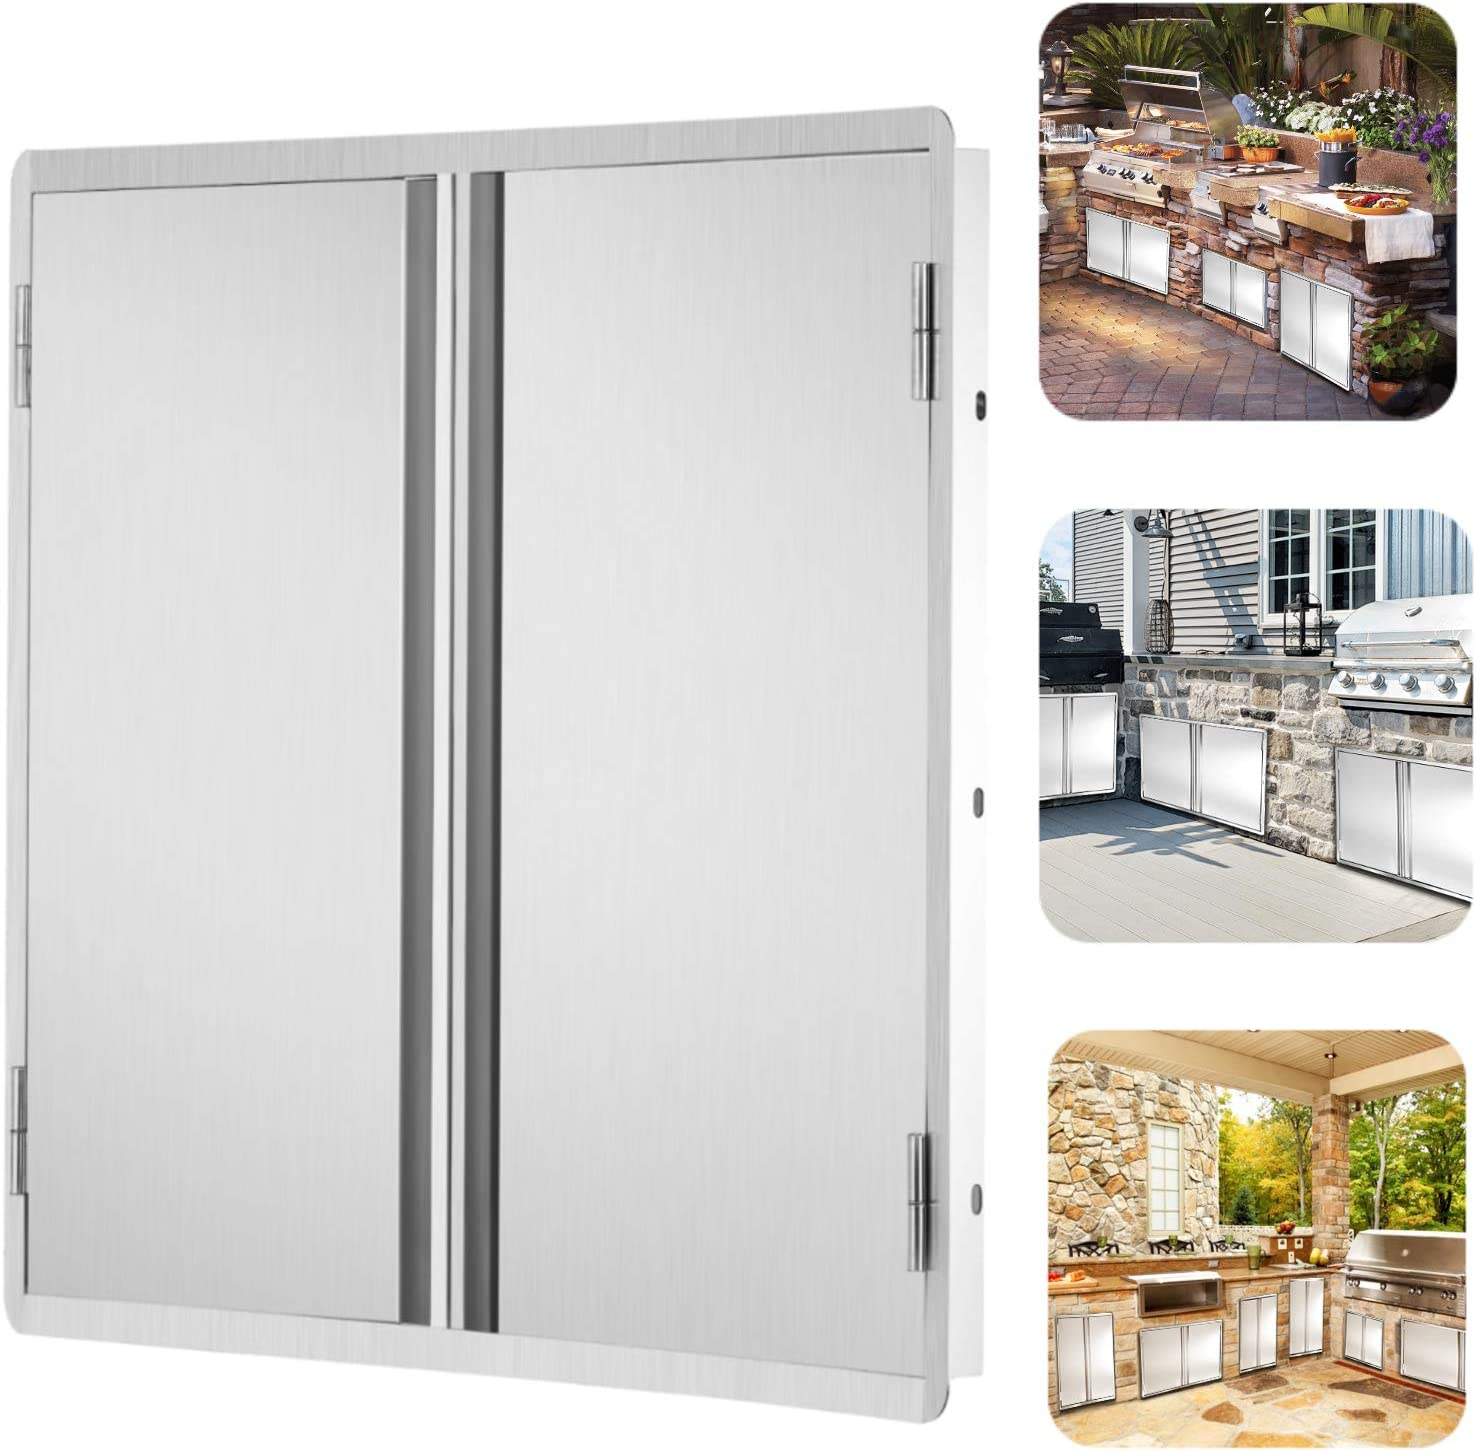 Amazon Com Outdoor Kitchen Doors Stainless Steel Doors Bbq Access Door Vertical Outdoor Kitchen Cabinets 304 Stainless Steel Double Door For Outdoor Kitchen Grilling Station And Bbq Island 17 W X 24 H